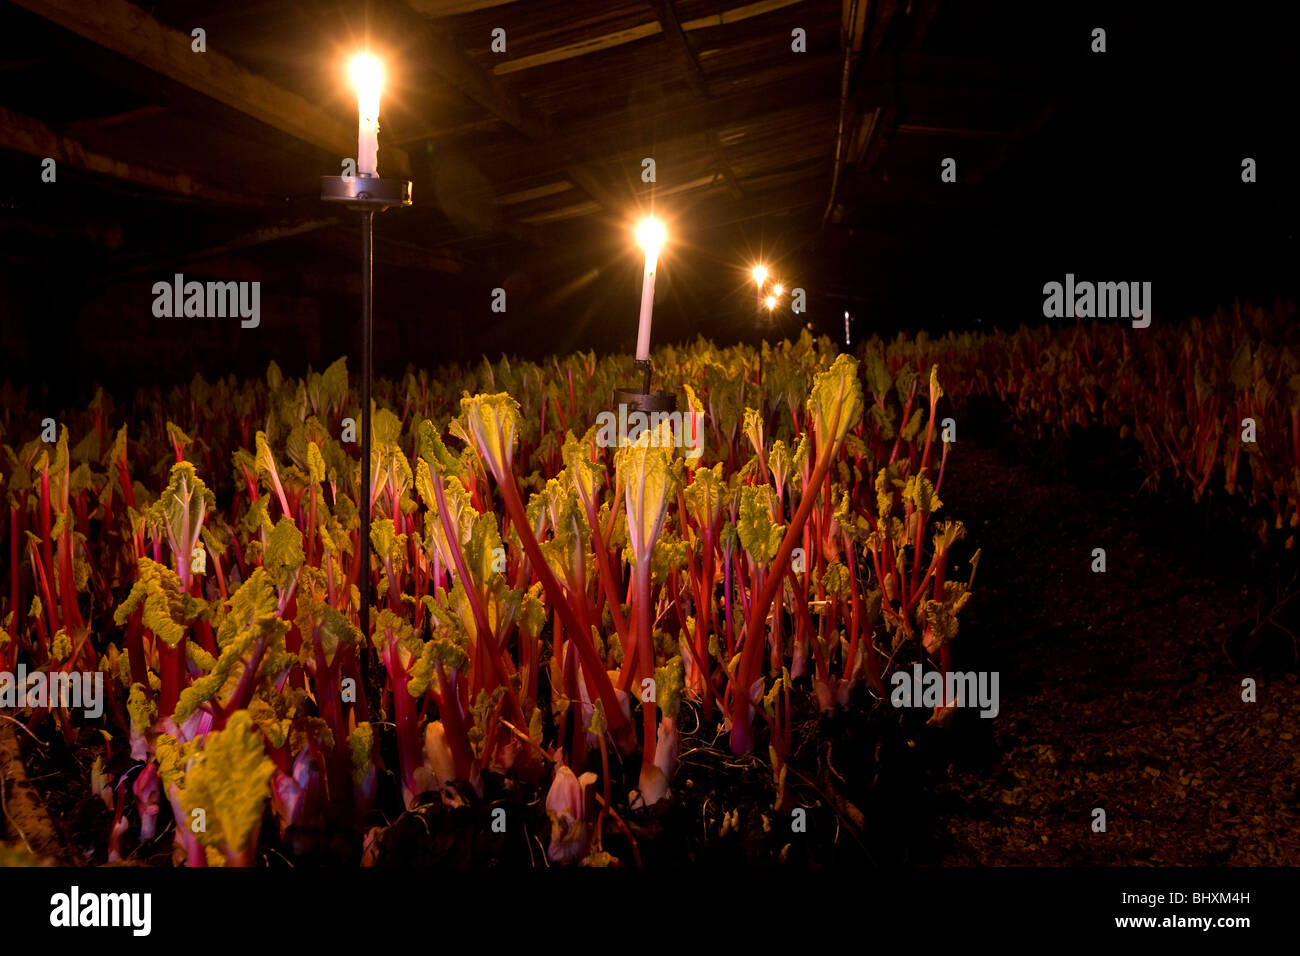 Rhubarb being forced under candlelight Stock Photo